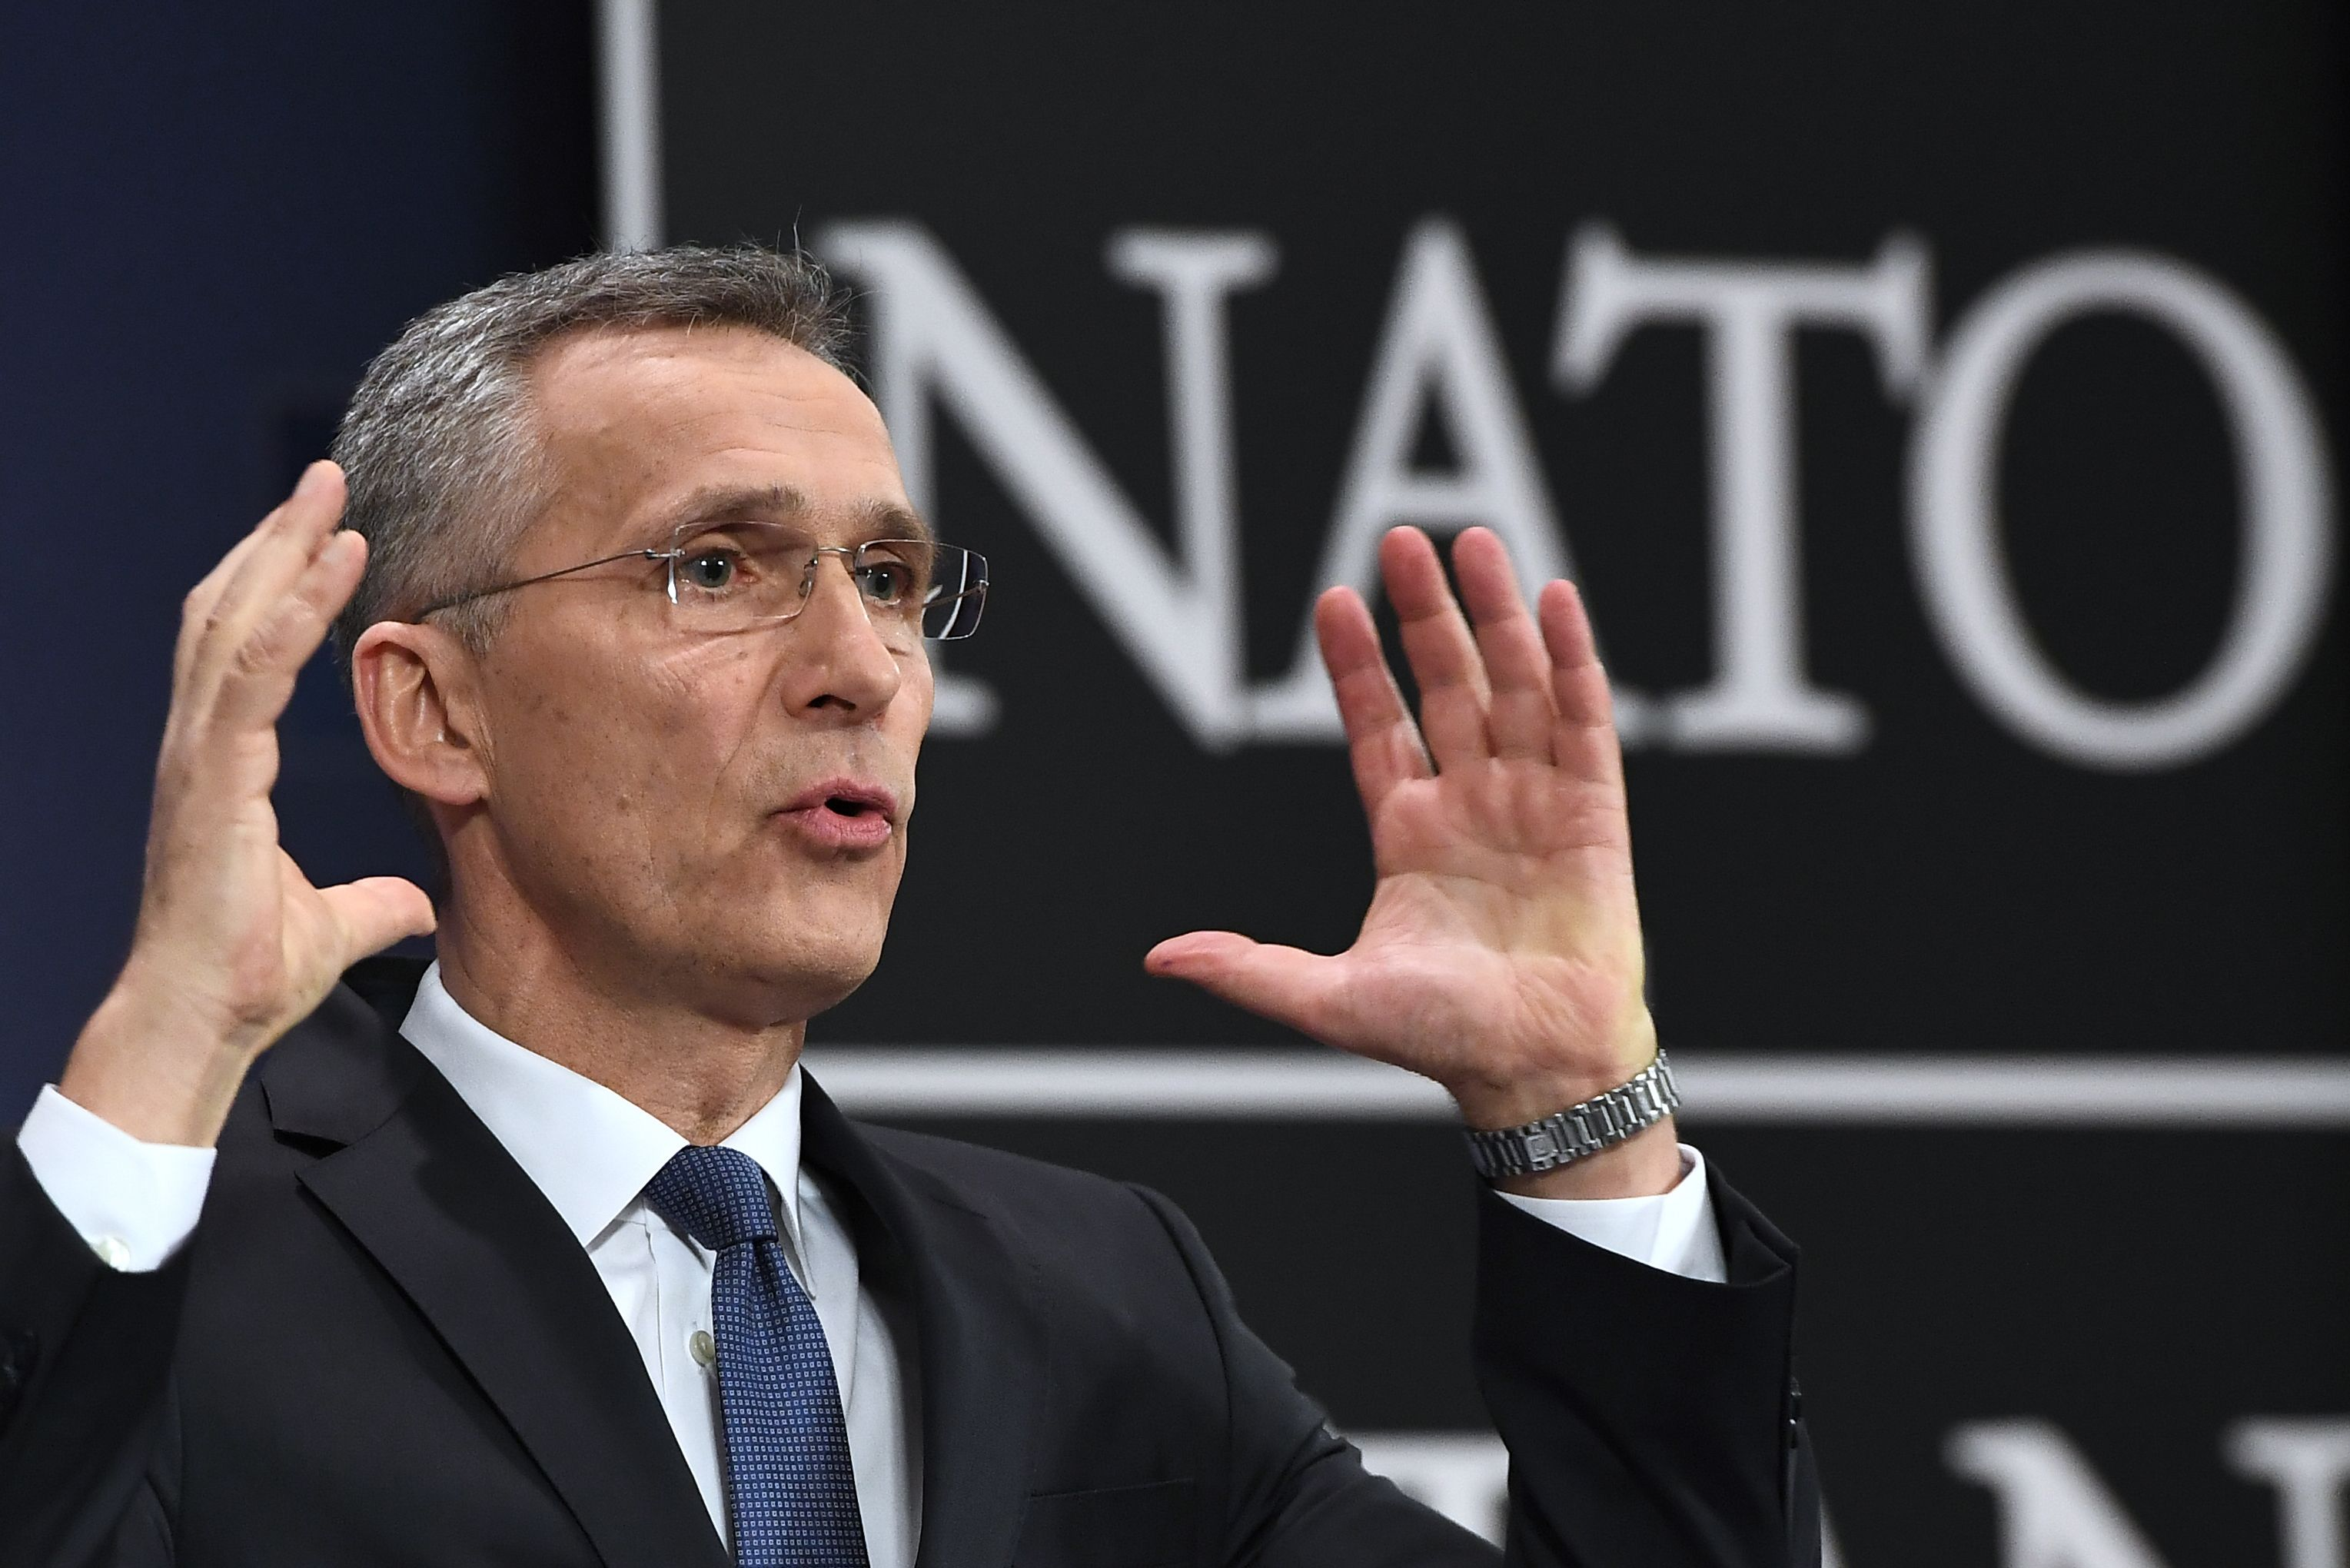 NATO Secretary General Jens Stoltenberg gestures as he addresses a news conference to give the alliance's annual report at NATO headquarters in Brussels on March 15, 2018. (Emmanuel Dunand/AFP via Getty Images)